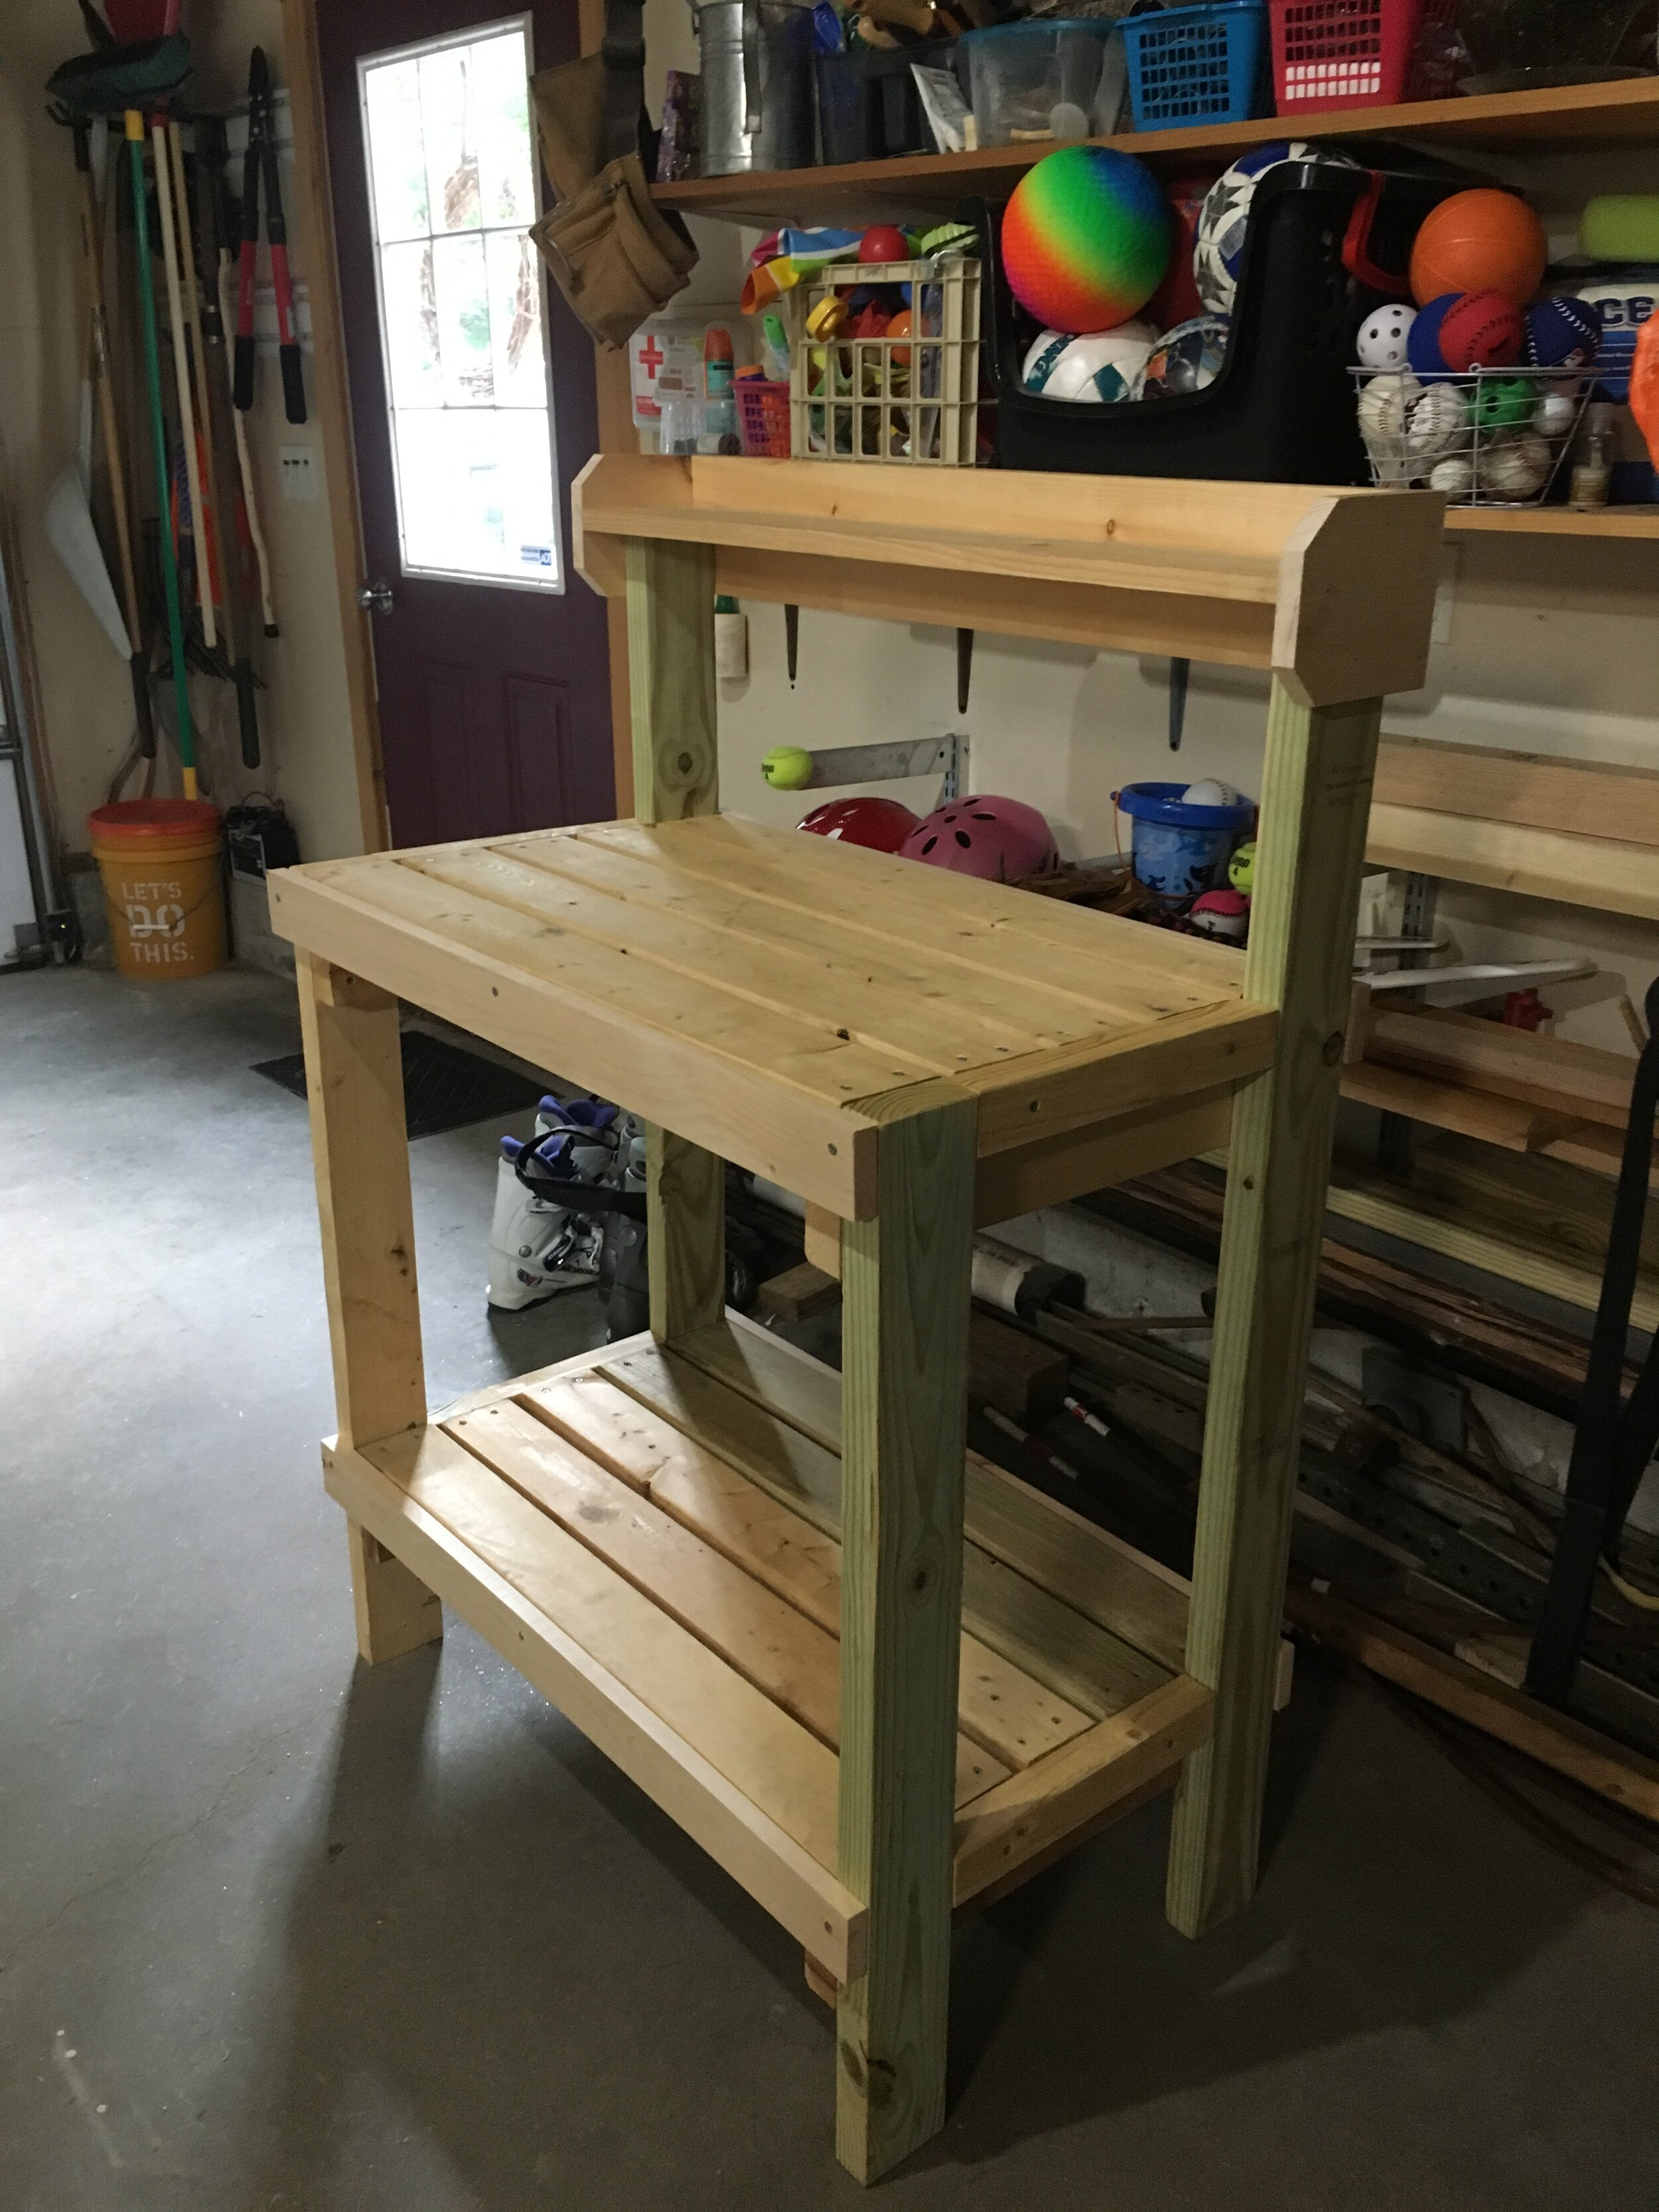 DIY Potting Bench - Based on Plans by Ana White